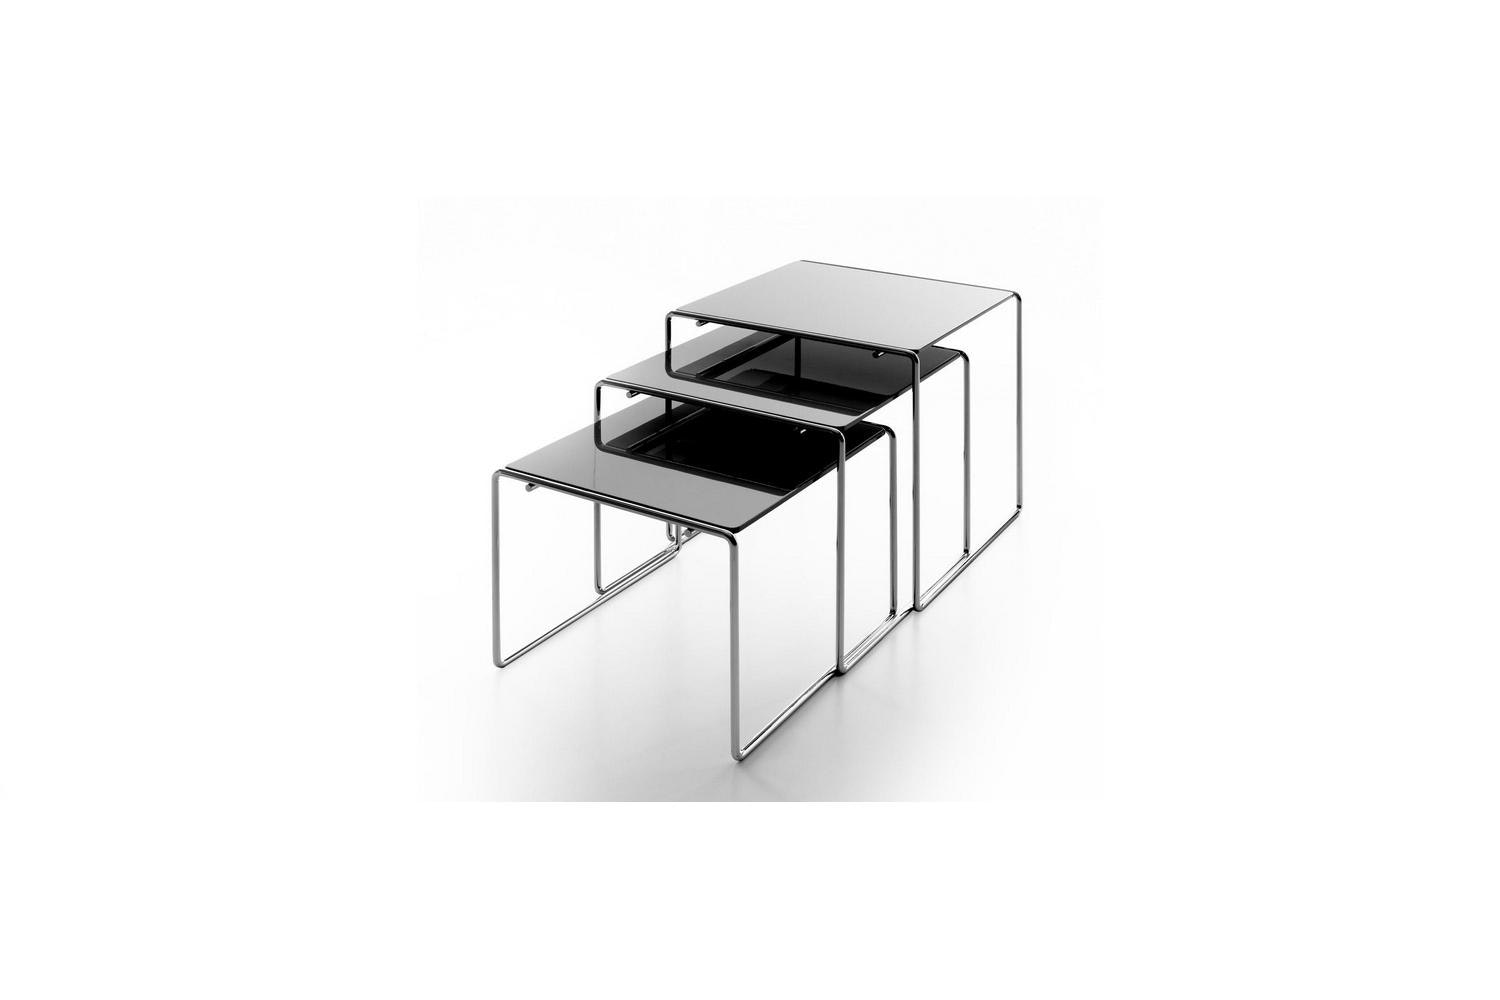 W60 Marcel T Side Table by Kazuhide Takahama for Cassina